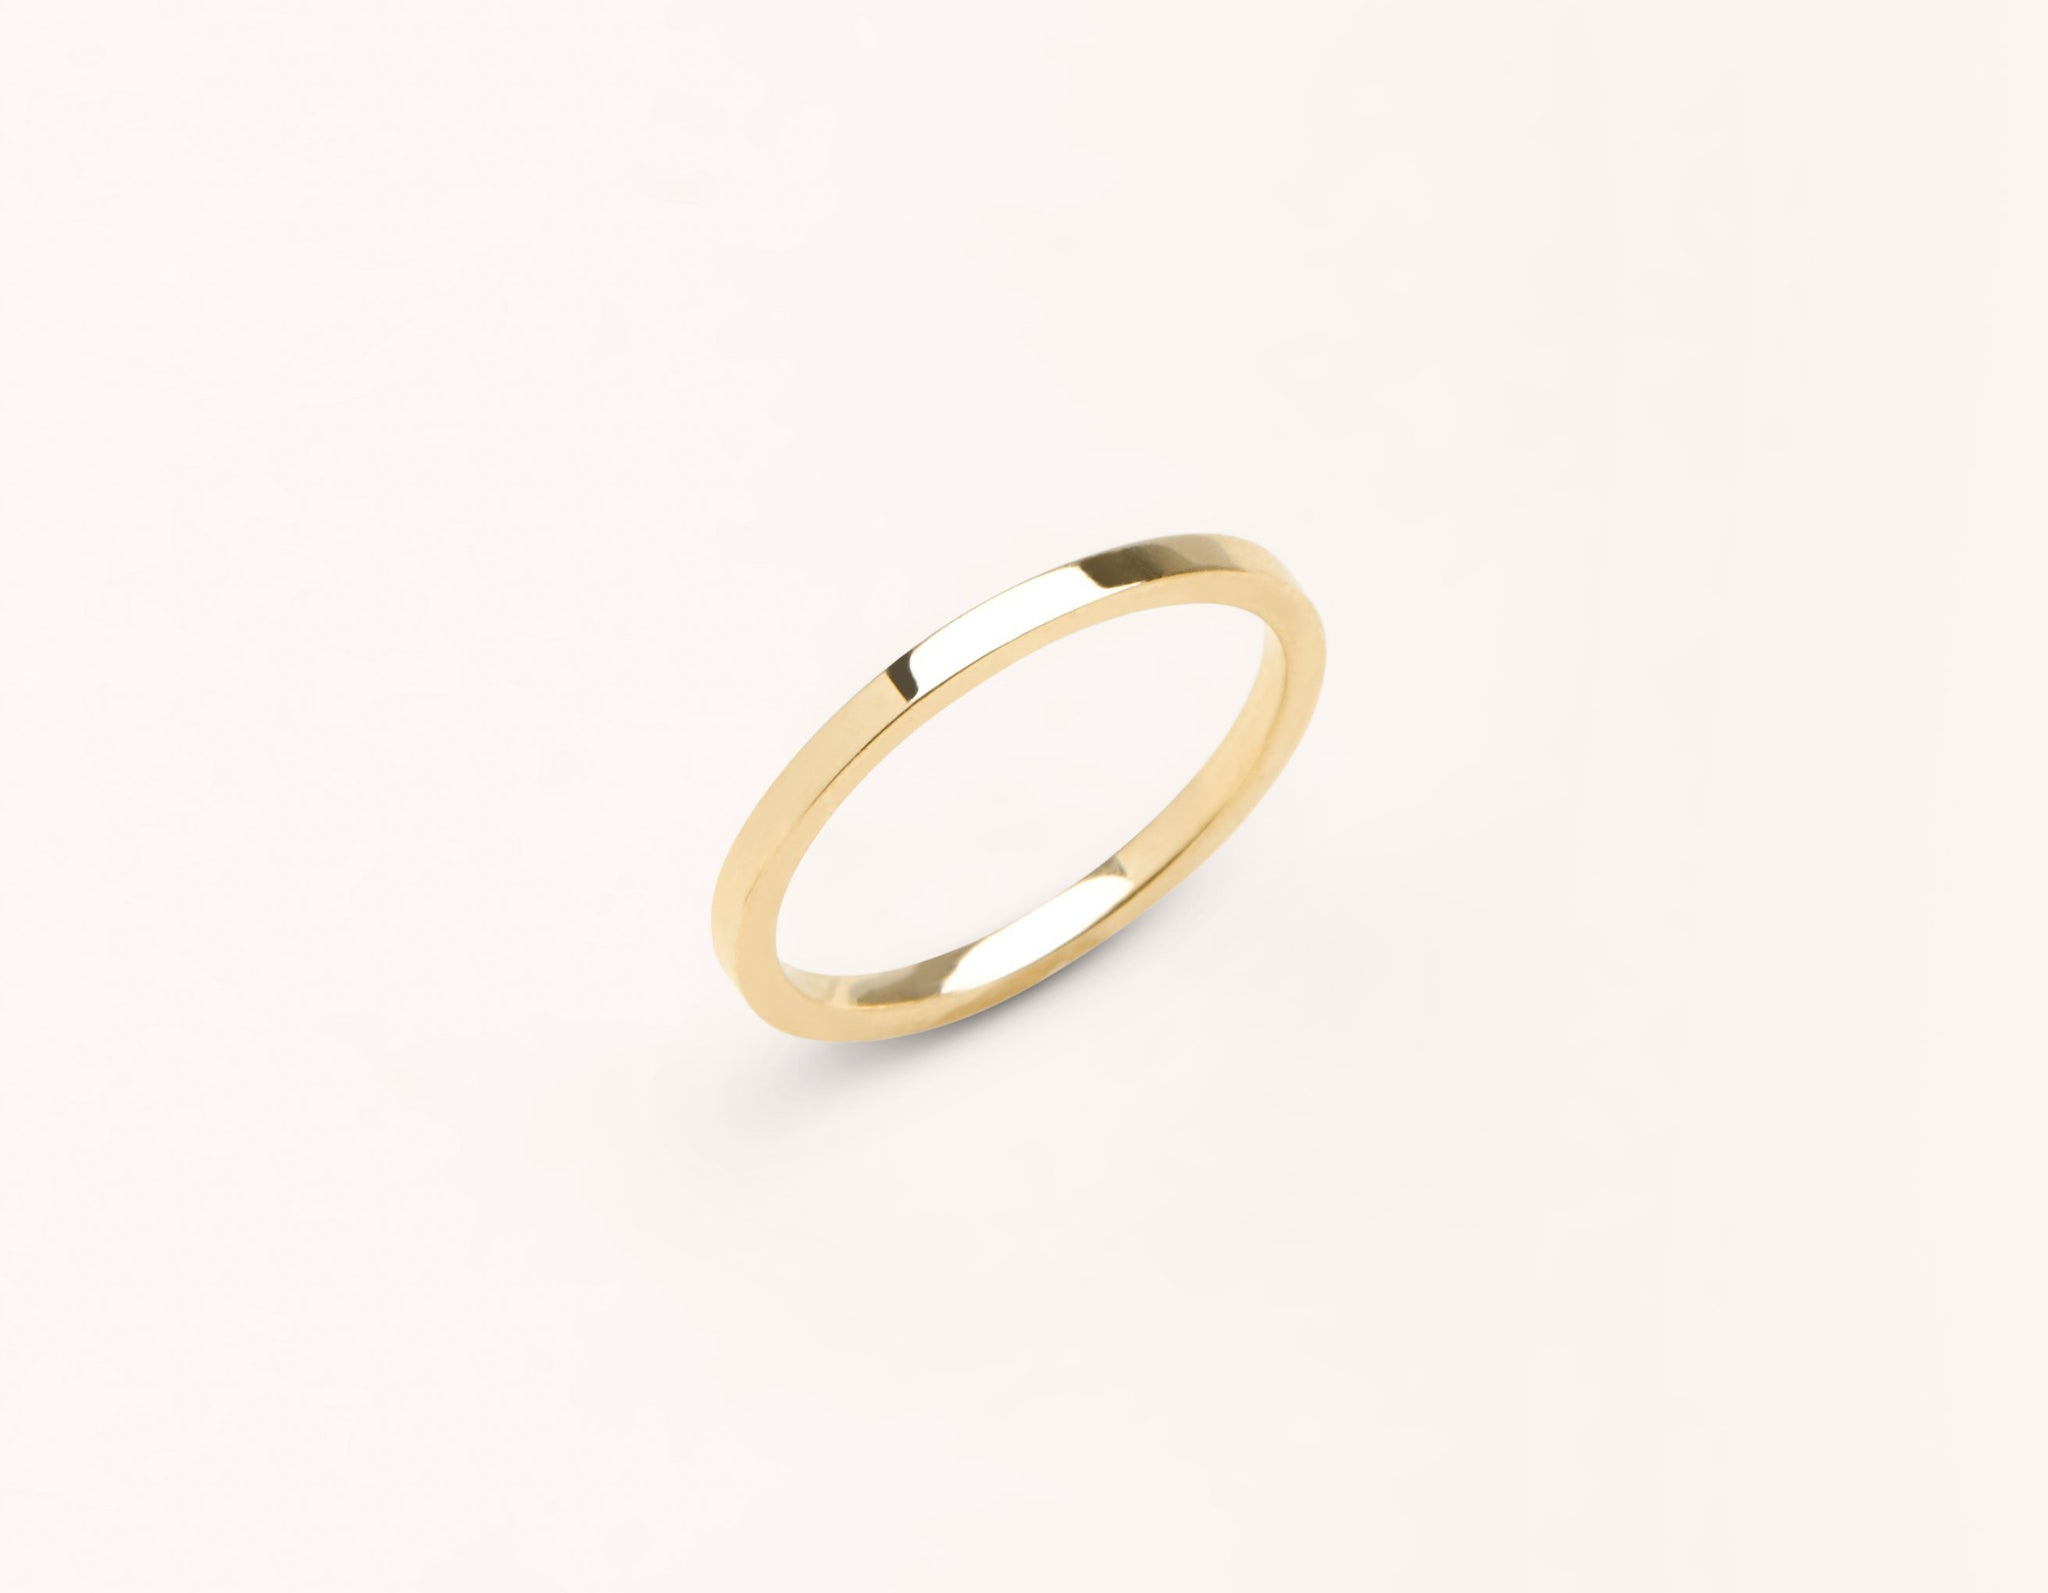 Minimalist 18k solid yellow gold 1.5 mm Flat Wedding Band for men and women Vrai and Oro